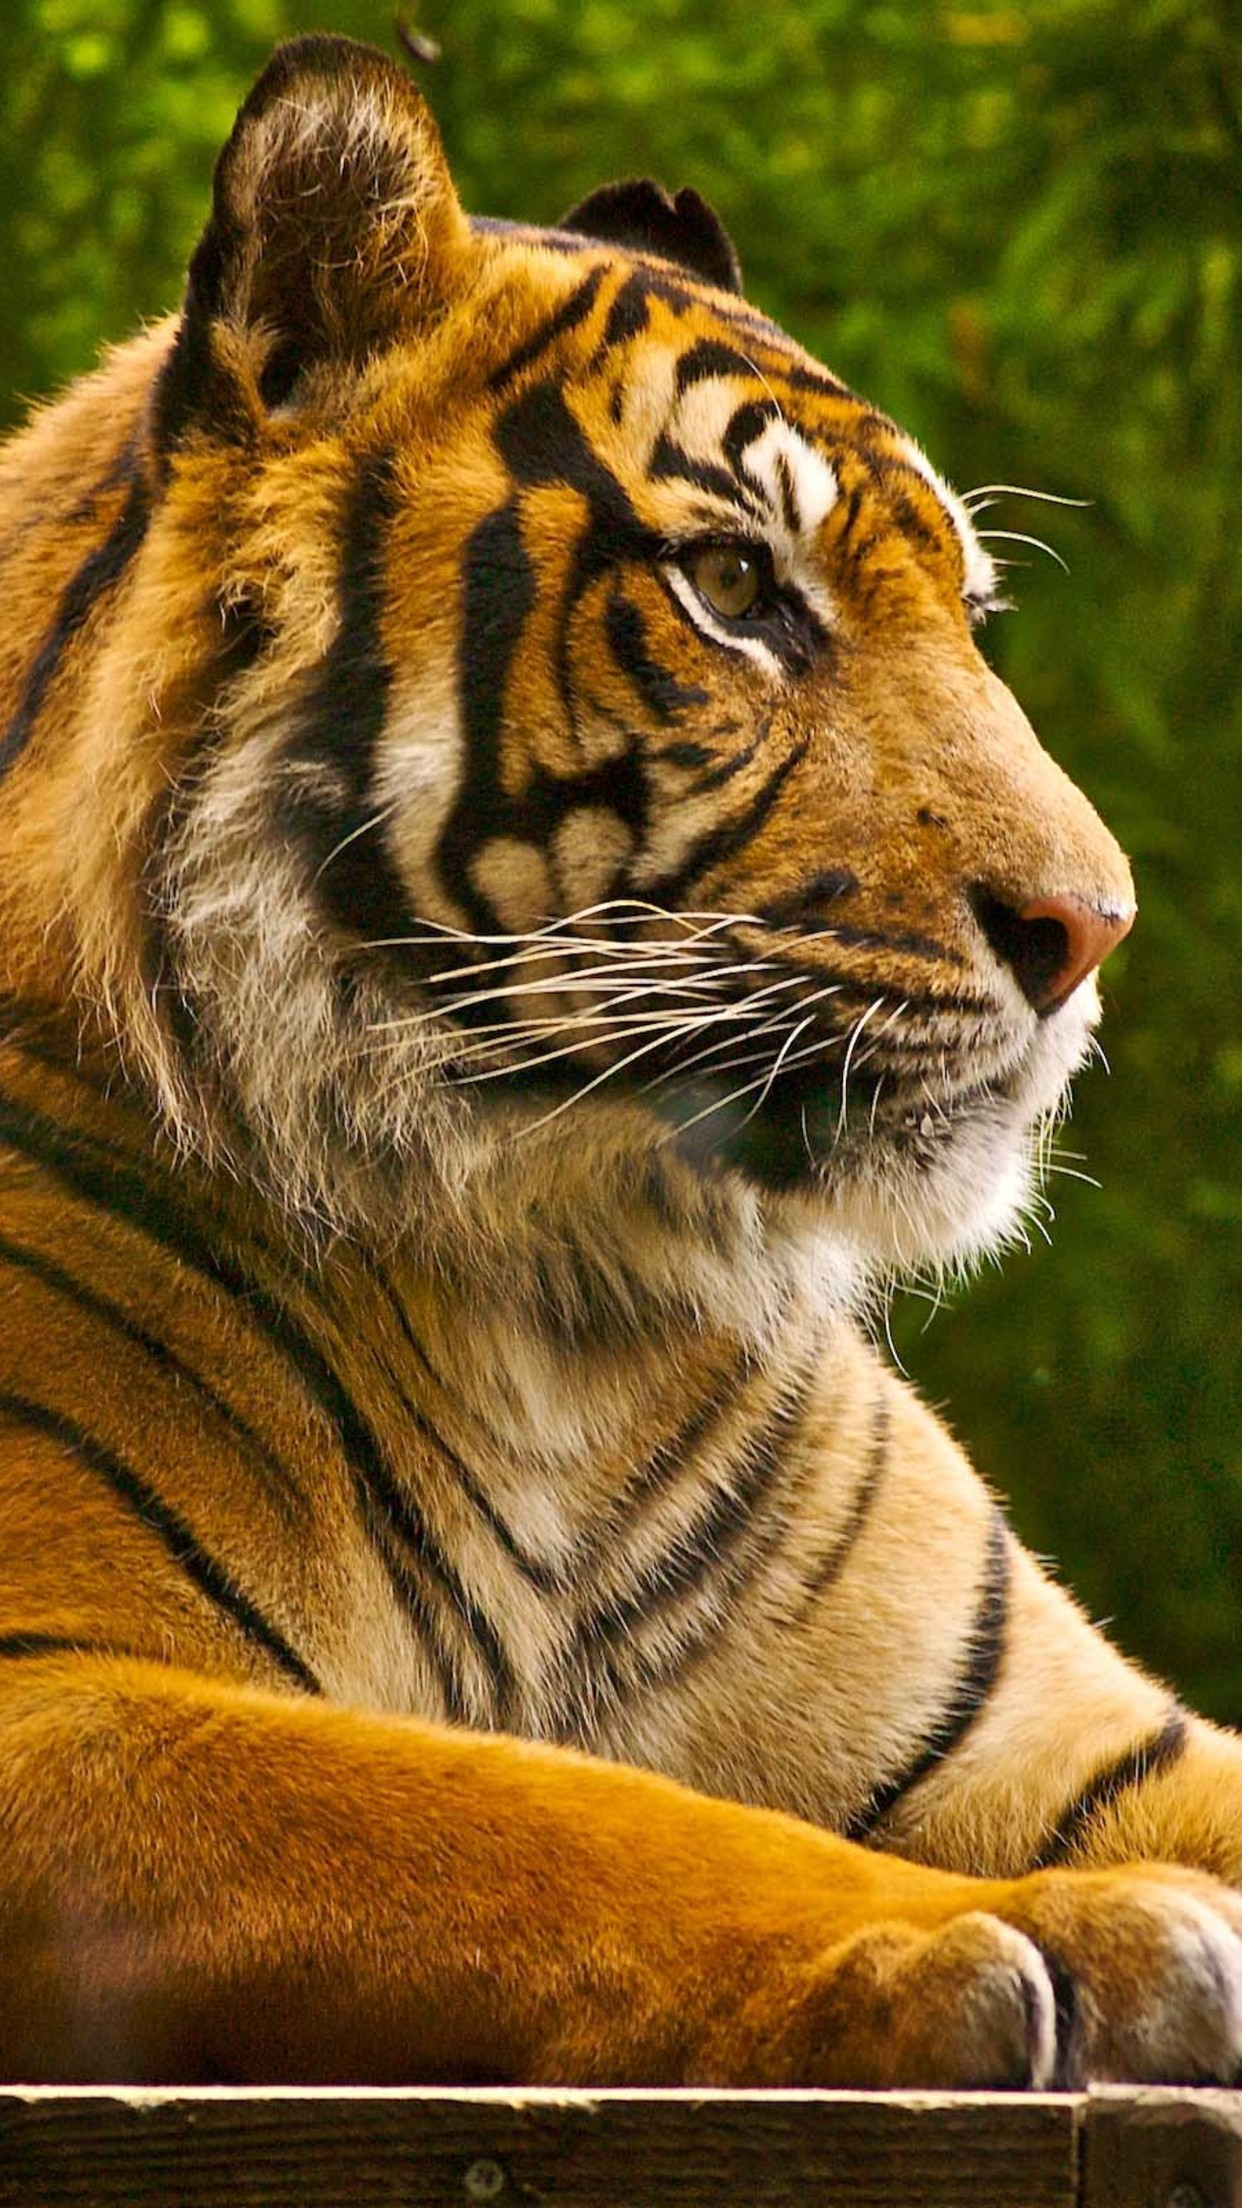 Animal Tiger Wallpaper For Iphone X 8 7 6 Free Download On